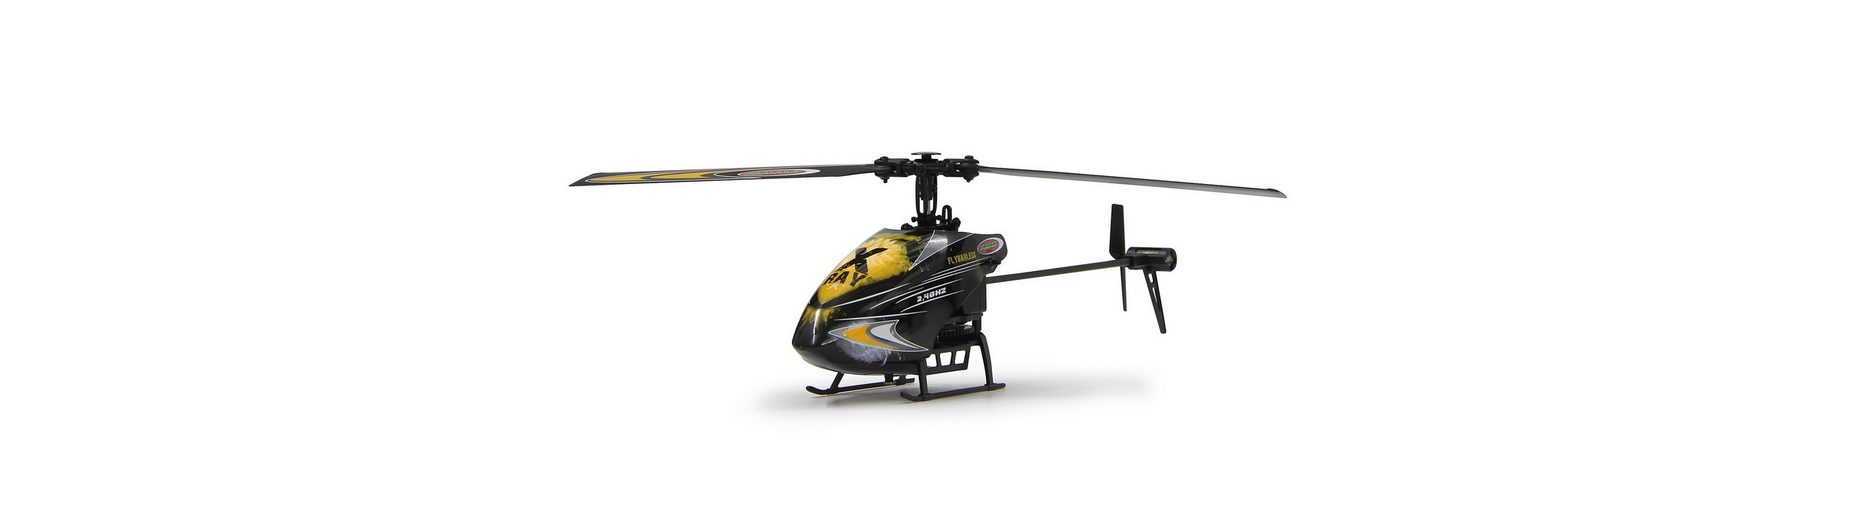 JAMARA RC Helikopter, »X-Ray, 2,4 GHz Gas links«